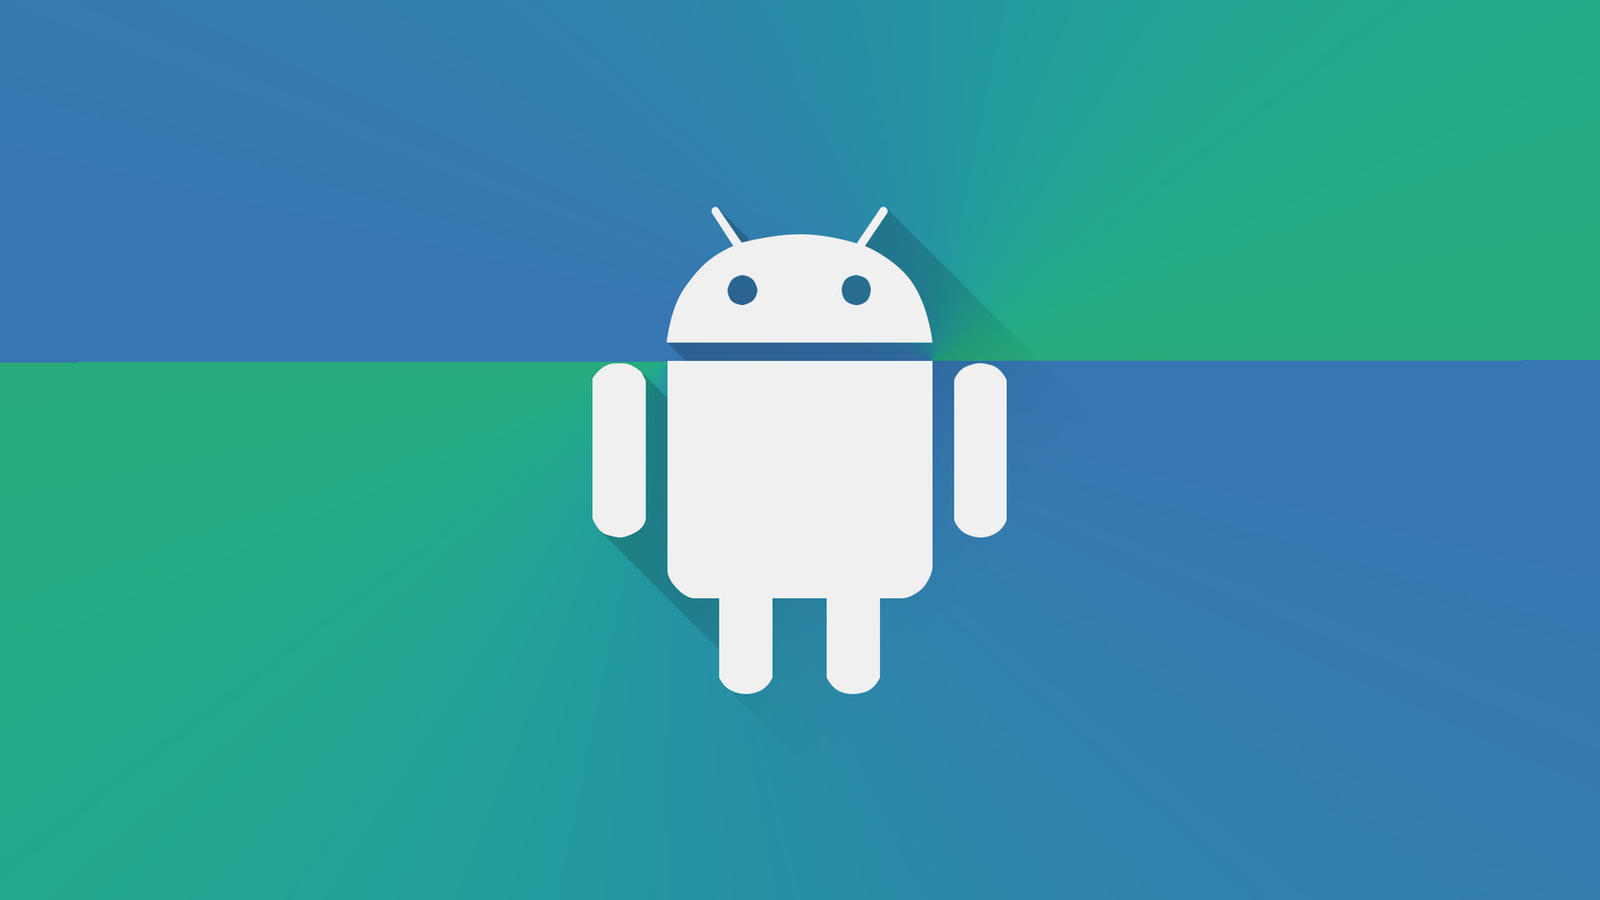 Android wallpaper by plusjack on deviantart for Android wallpaper 5 home screens